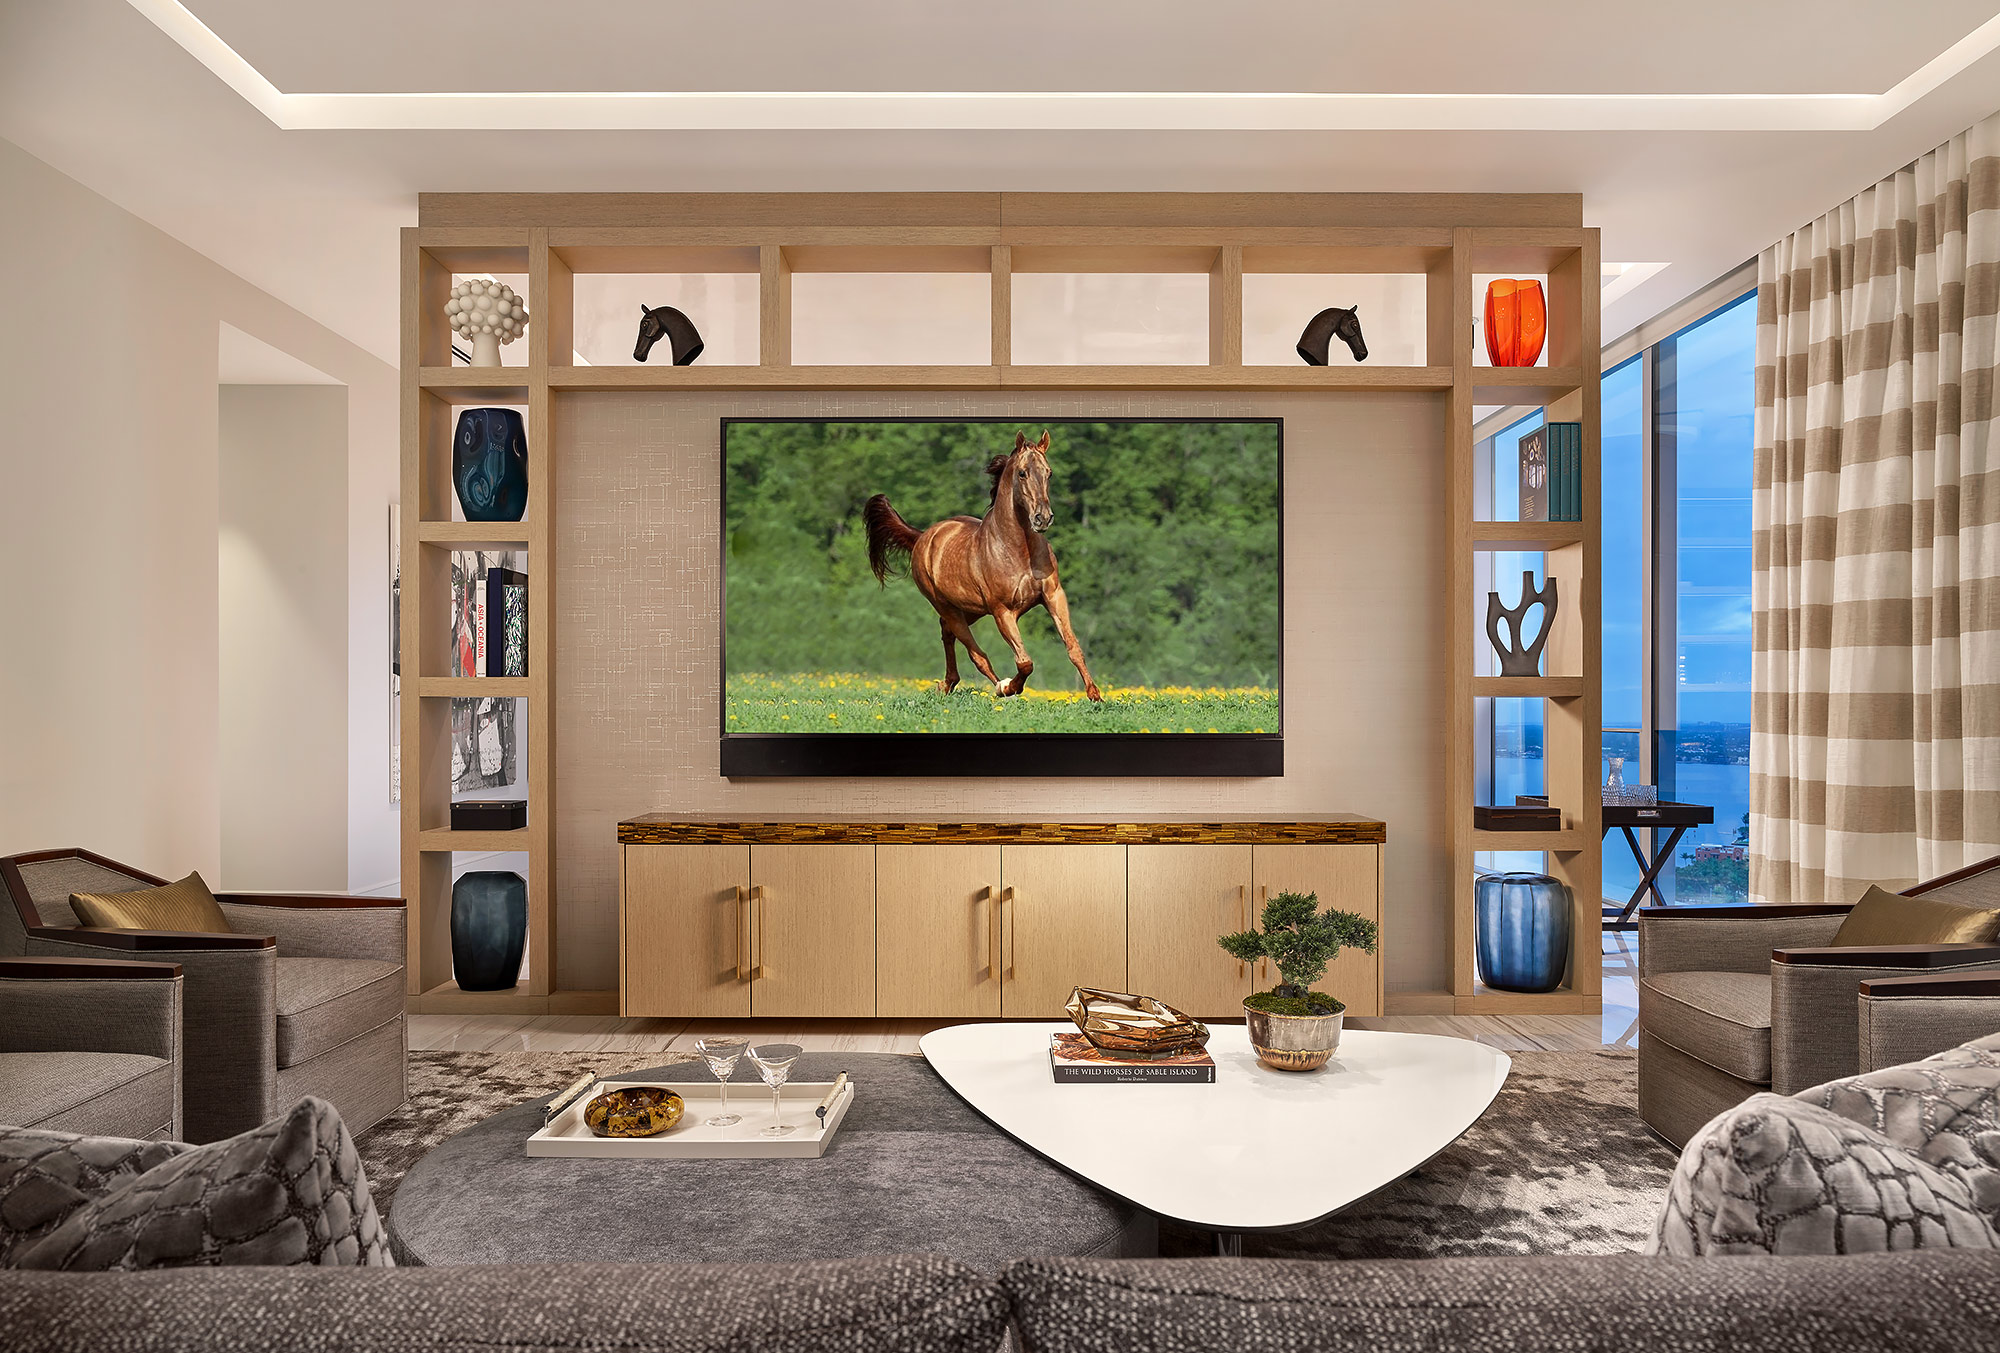 Modern-Family-Room-Horse-Gallop-Television-Florida-Design-Photographer